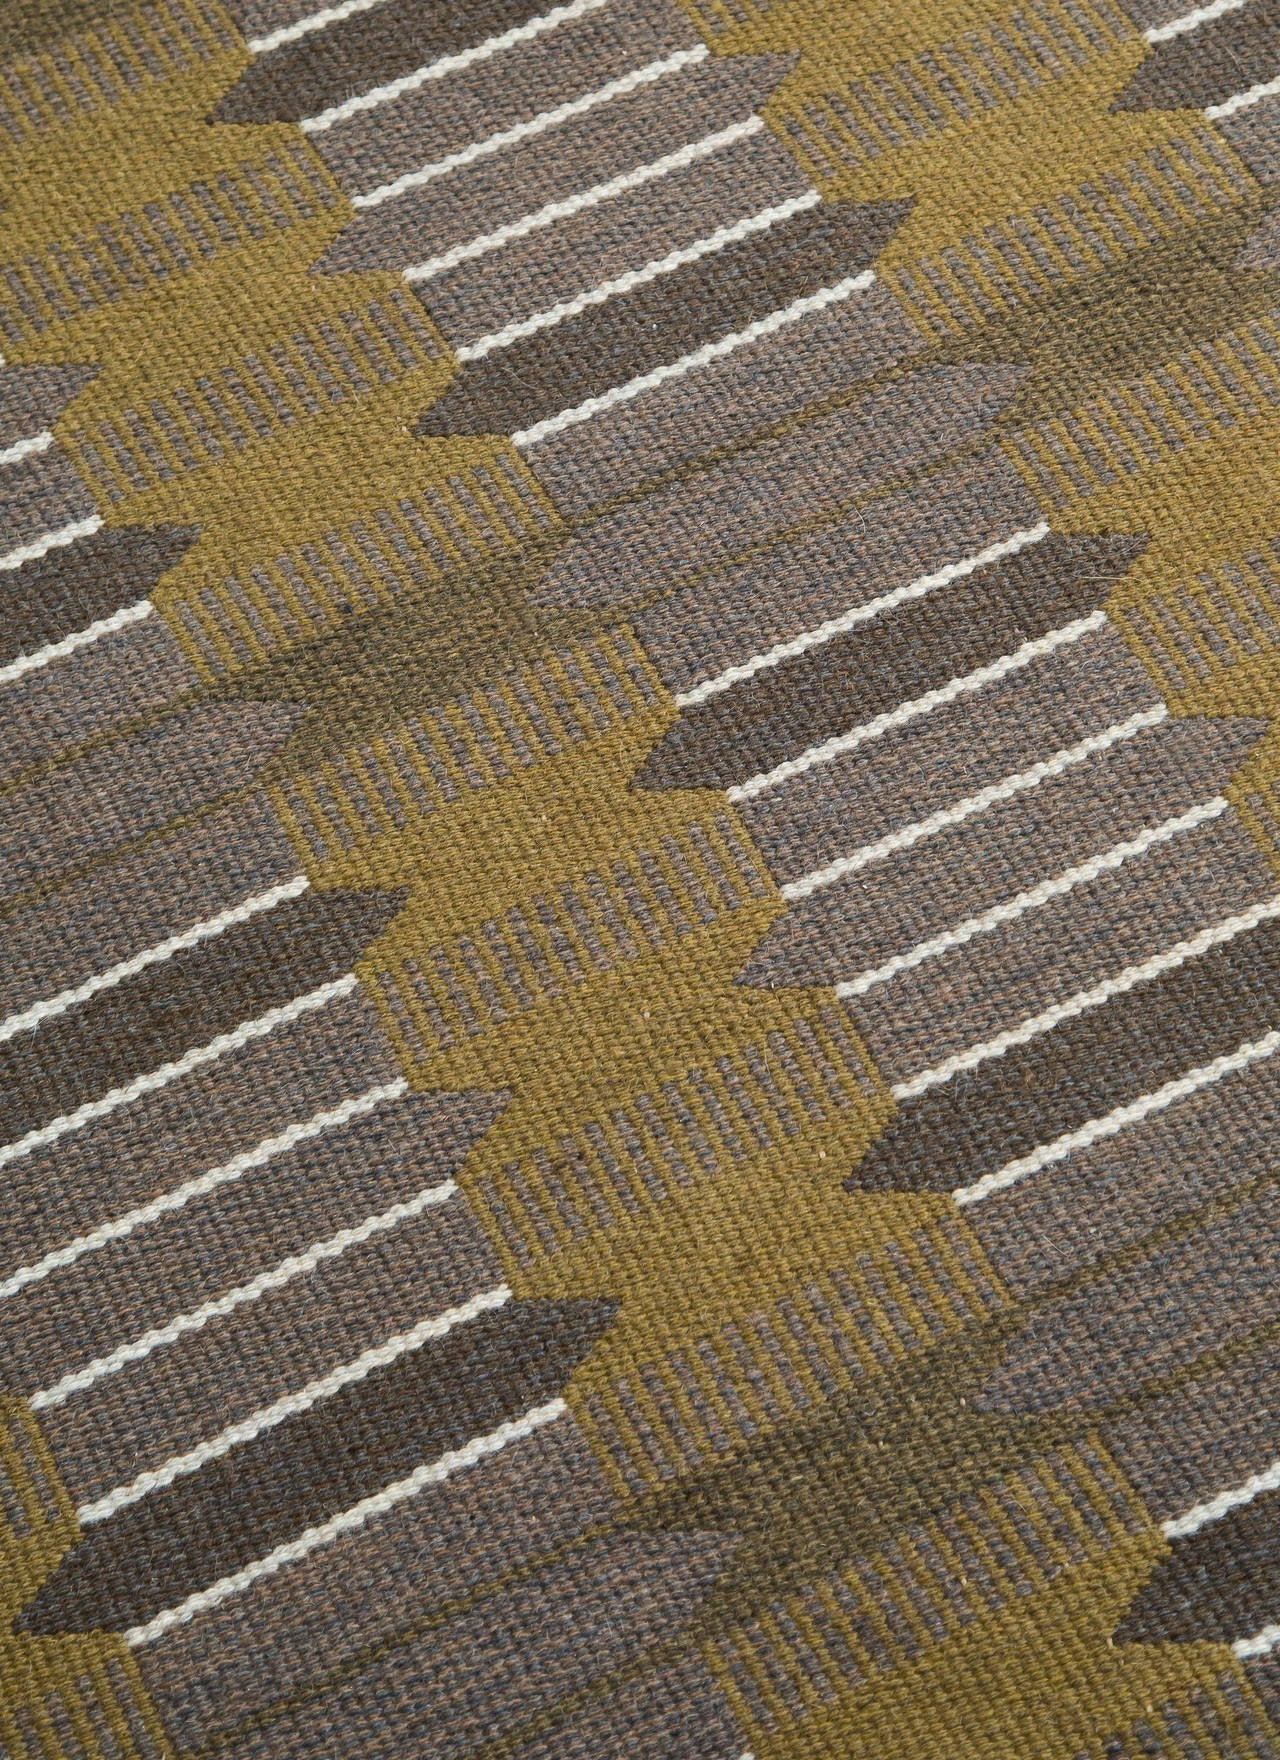 Vintage Swedish Flat-Weave Carpet, Handmade, 1950s